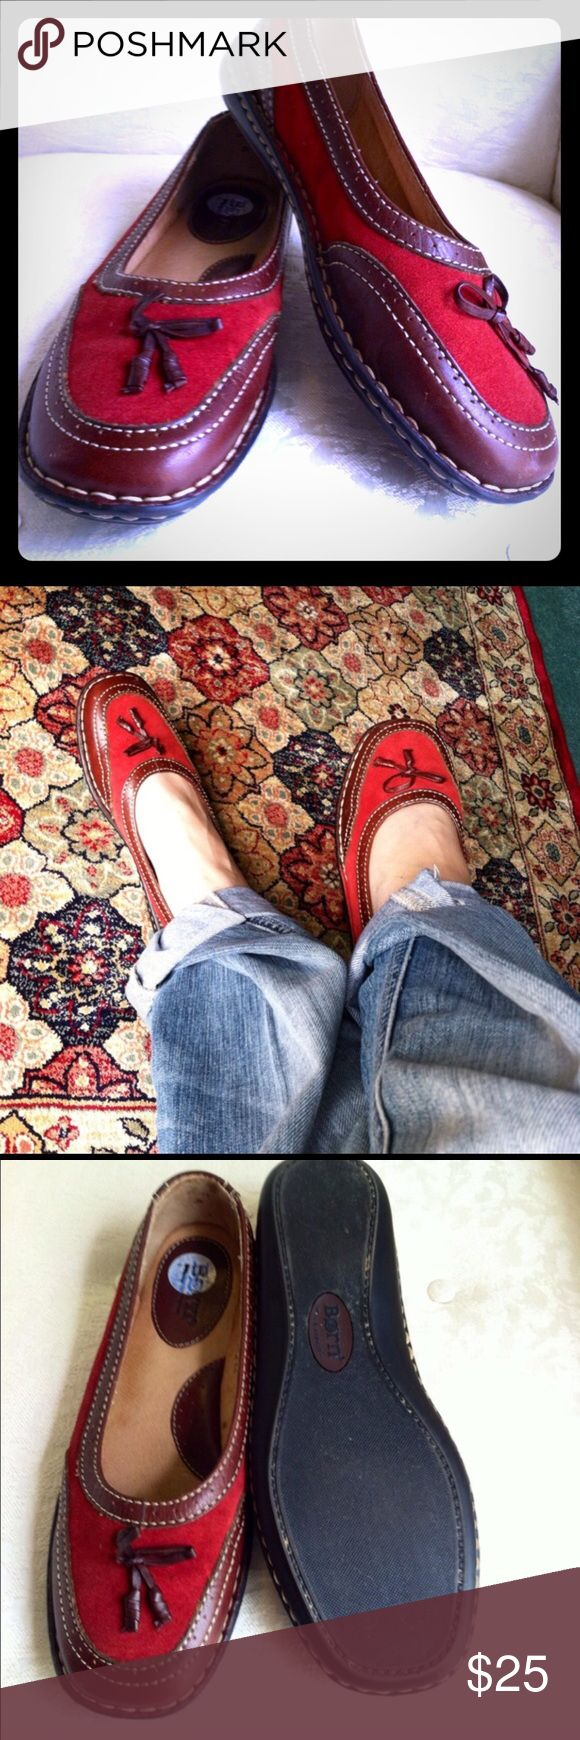 BORN Maroon & red flats Maroon & red flats BORN size 7.5 very comfortable shoes. Leather and red suede upper. EUC Born Shoes Flats & Loafers